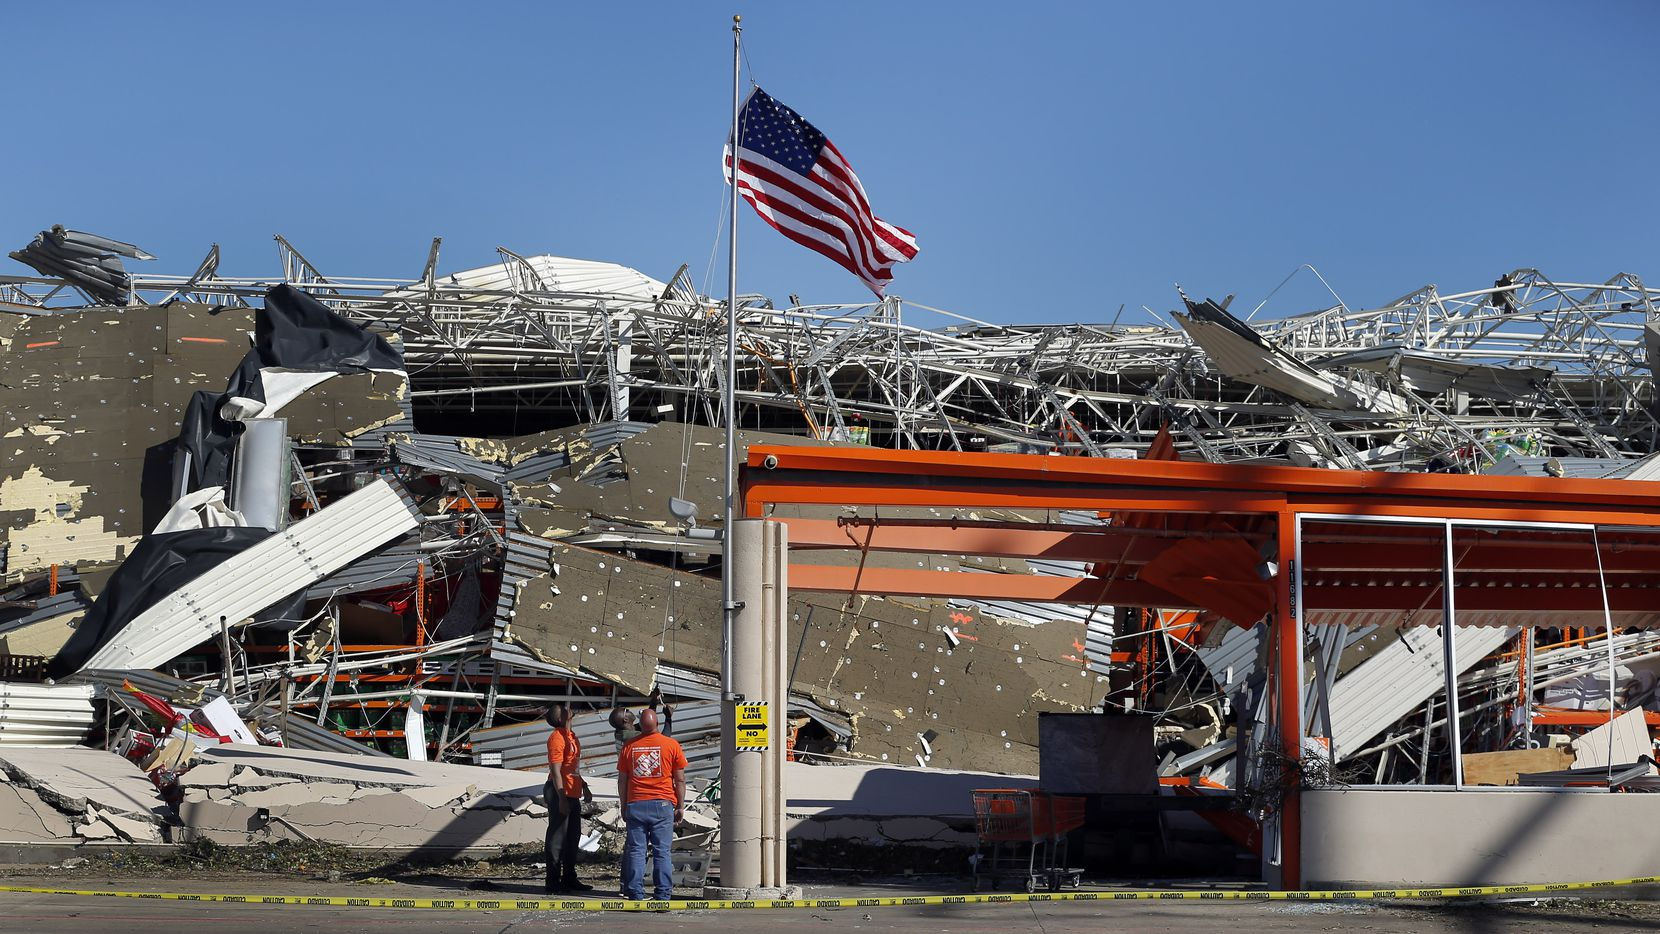 The Home Depot employees A.J. Kobena (center) raised the U.S. flag on the slightly bent flagpole outside the destroyed store just east N. Central Expressway on Forest Lane in Dallas, Monday, October 21, 2019. Joining him were store manager Jonathan Shields and assistant store manager Jordan Jasper.  A tornado tore through the entire neighborhood knocking down trees and ripping roofs from homes.